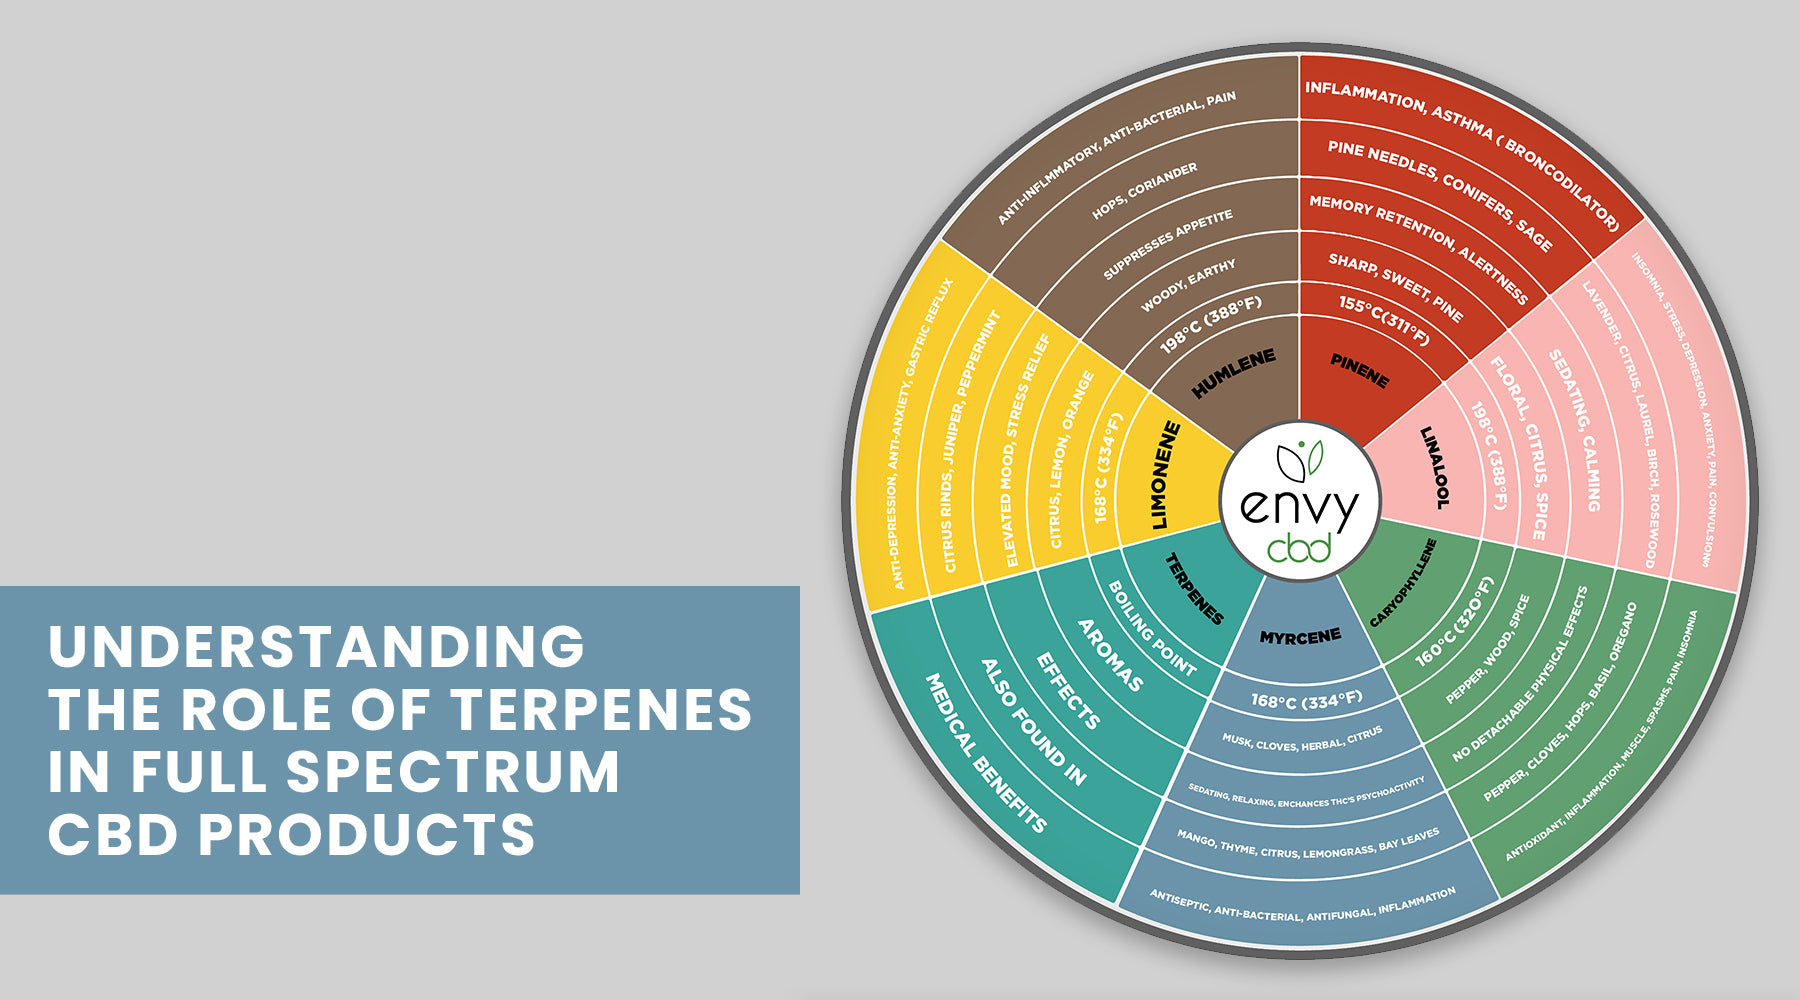 Understanding the Role of Terpenes in Full Spectrum CBD Products